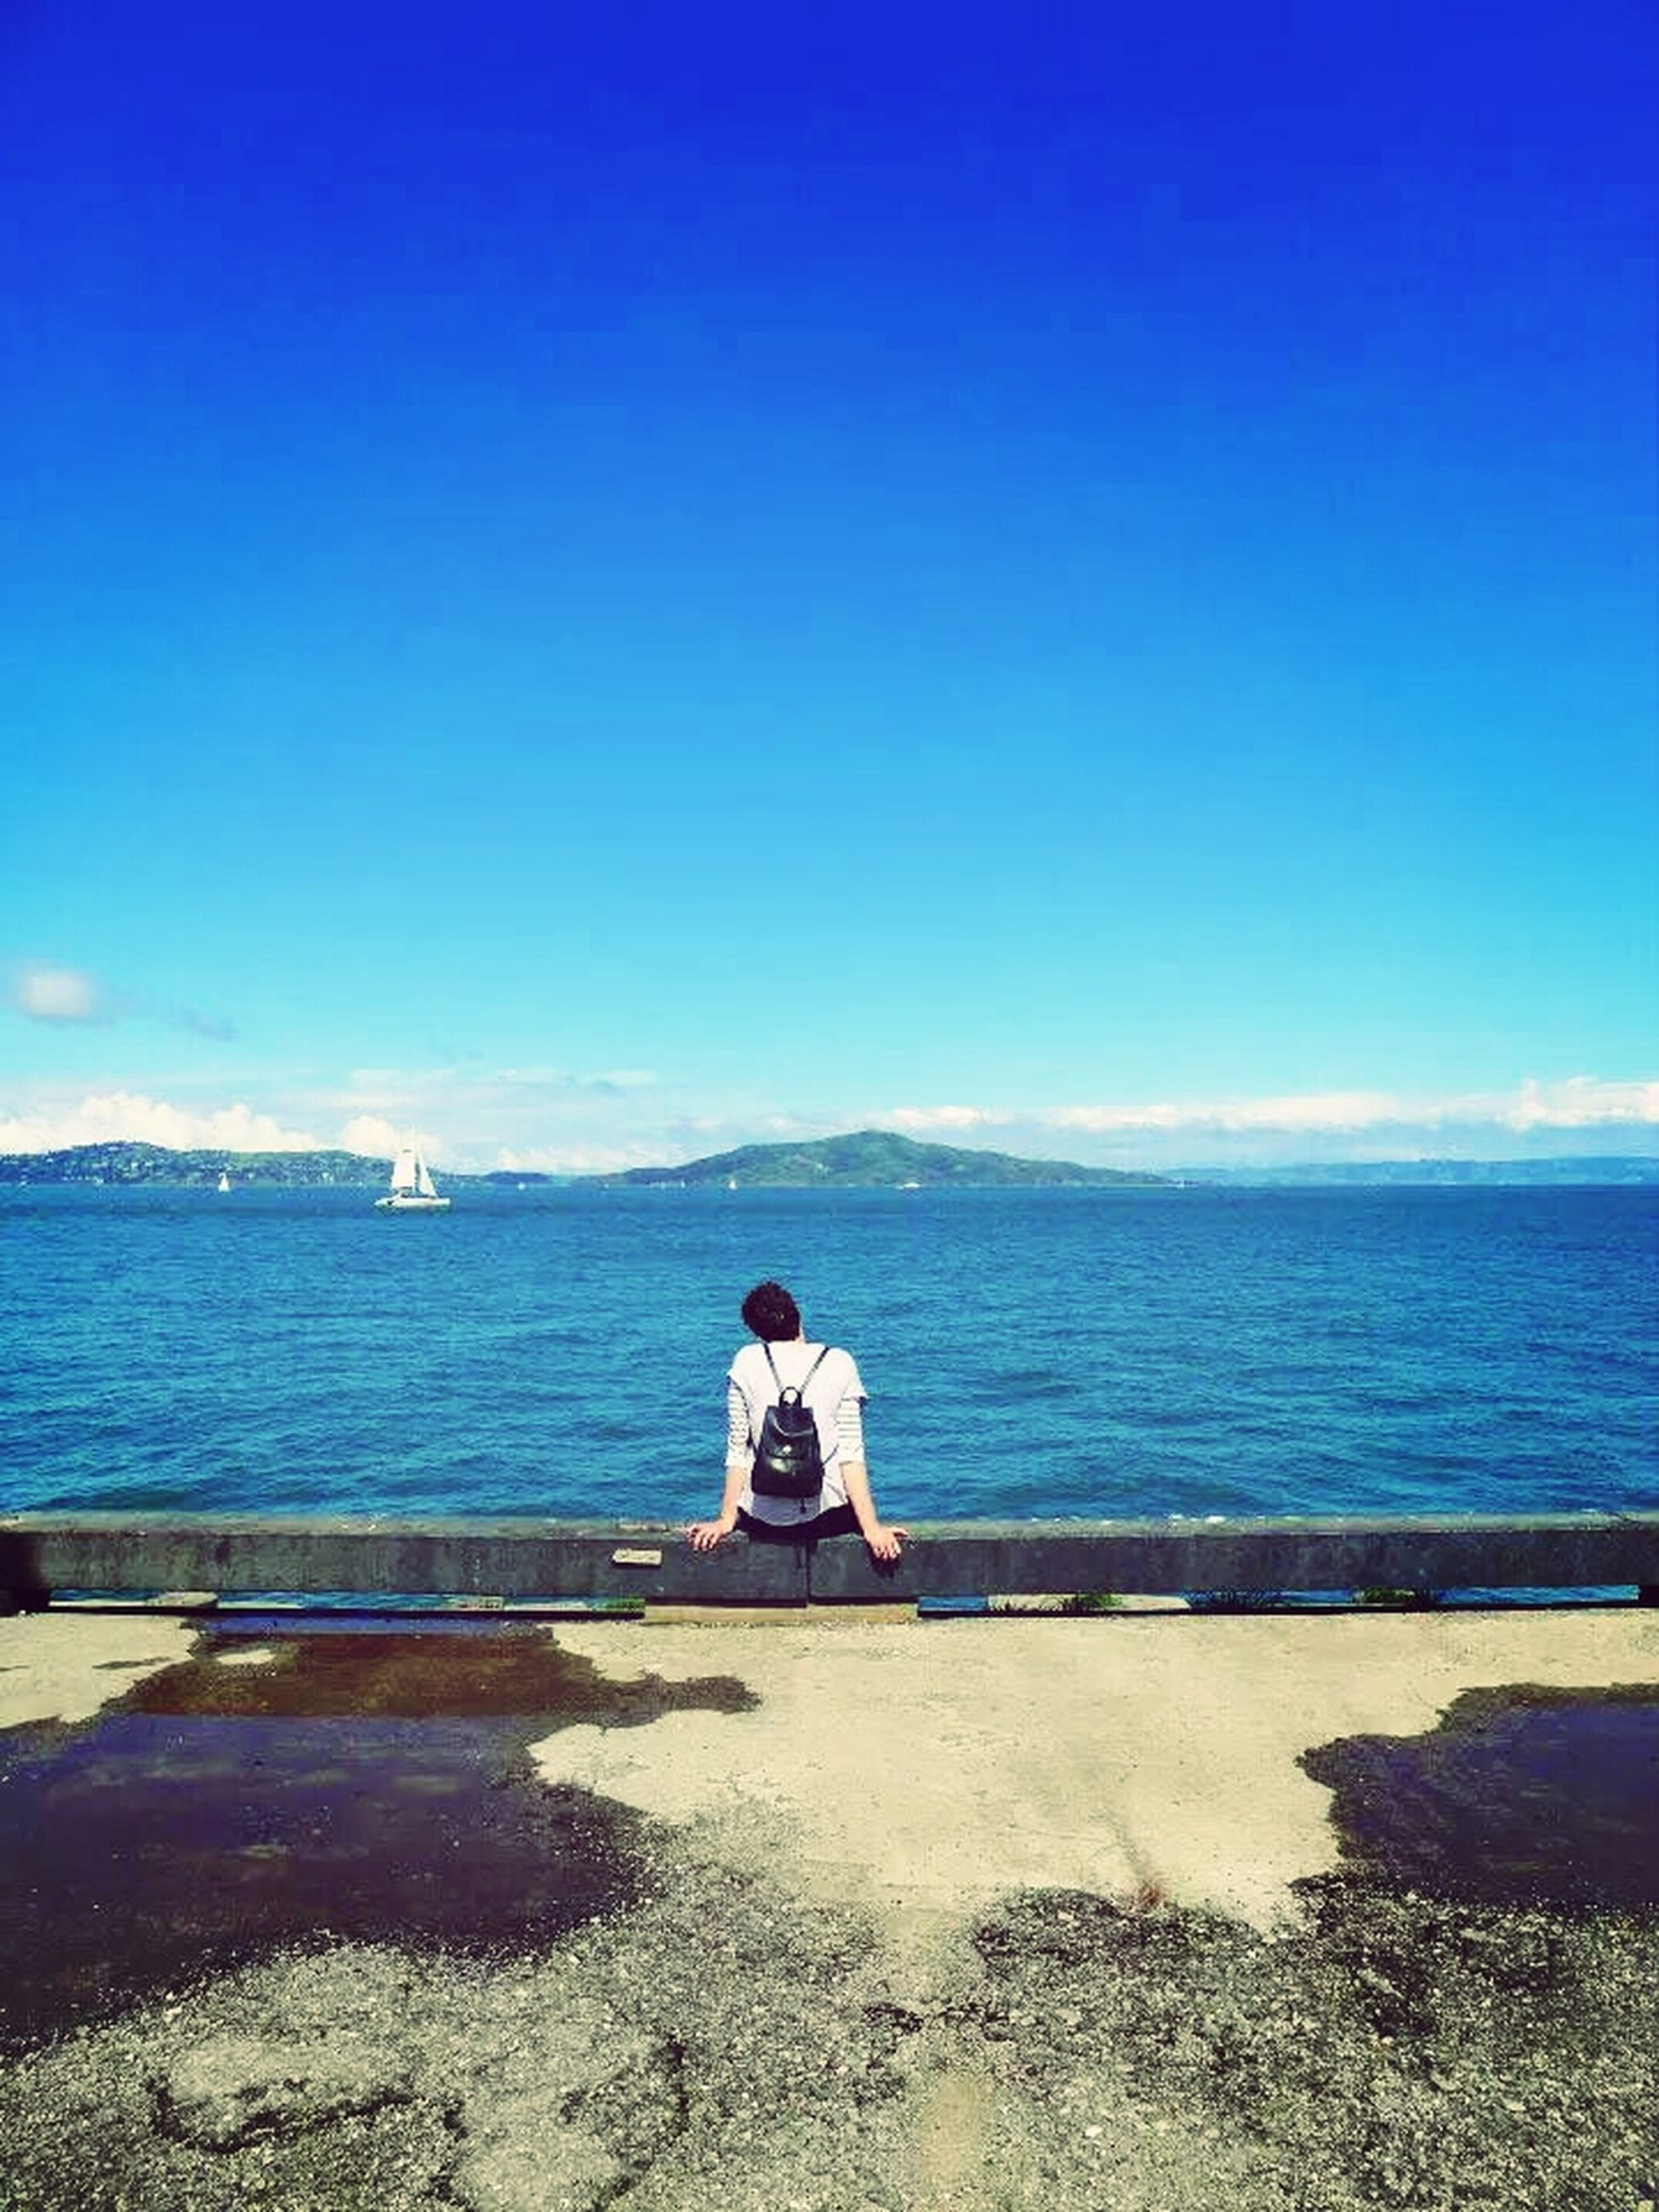 sea, water, horizon over water, blue, clear sky, sitting, relaxation, tranquility, tranquil scene, copy space, scenics, leisure activity, lifestyles, rear view, beach, beauty in nature, nature, shore